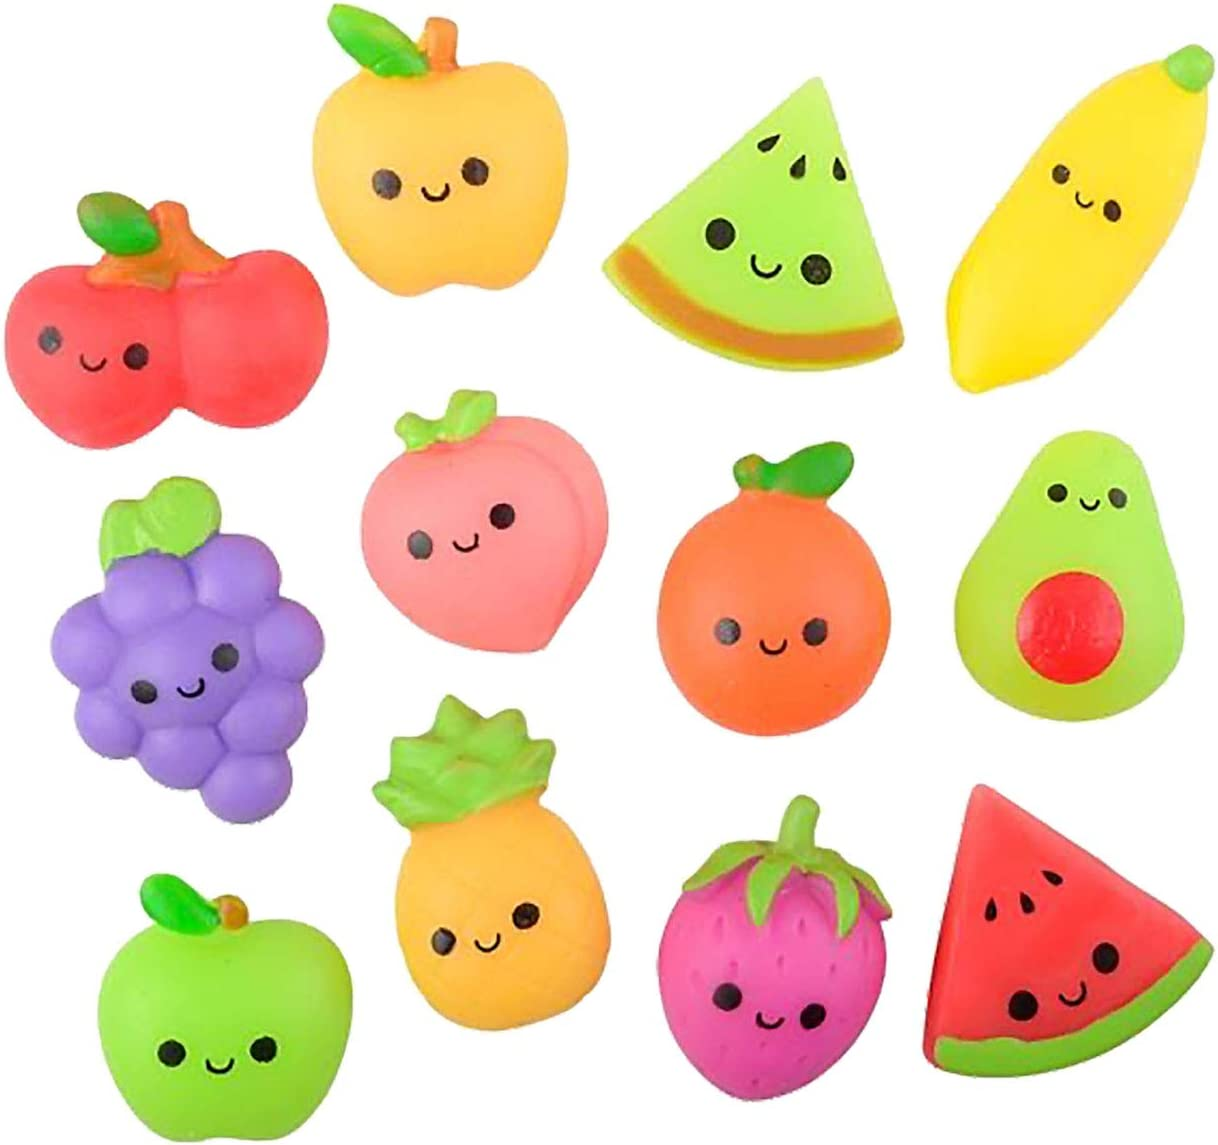 Curious Minds Busy Bags Set of 12 Fruit Mochi Squishy - Adorable Cute Kawaii - Cute Individually Wrapped Toys - Sensory, Stress, Fidget Party Favor Toy (Set of 12 (1 Dozen))